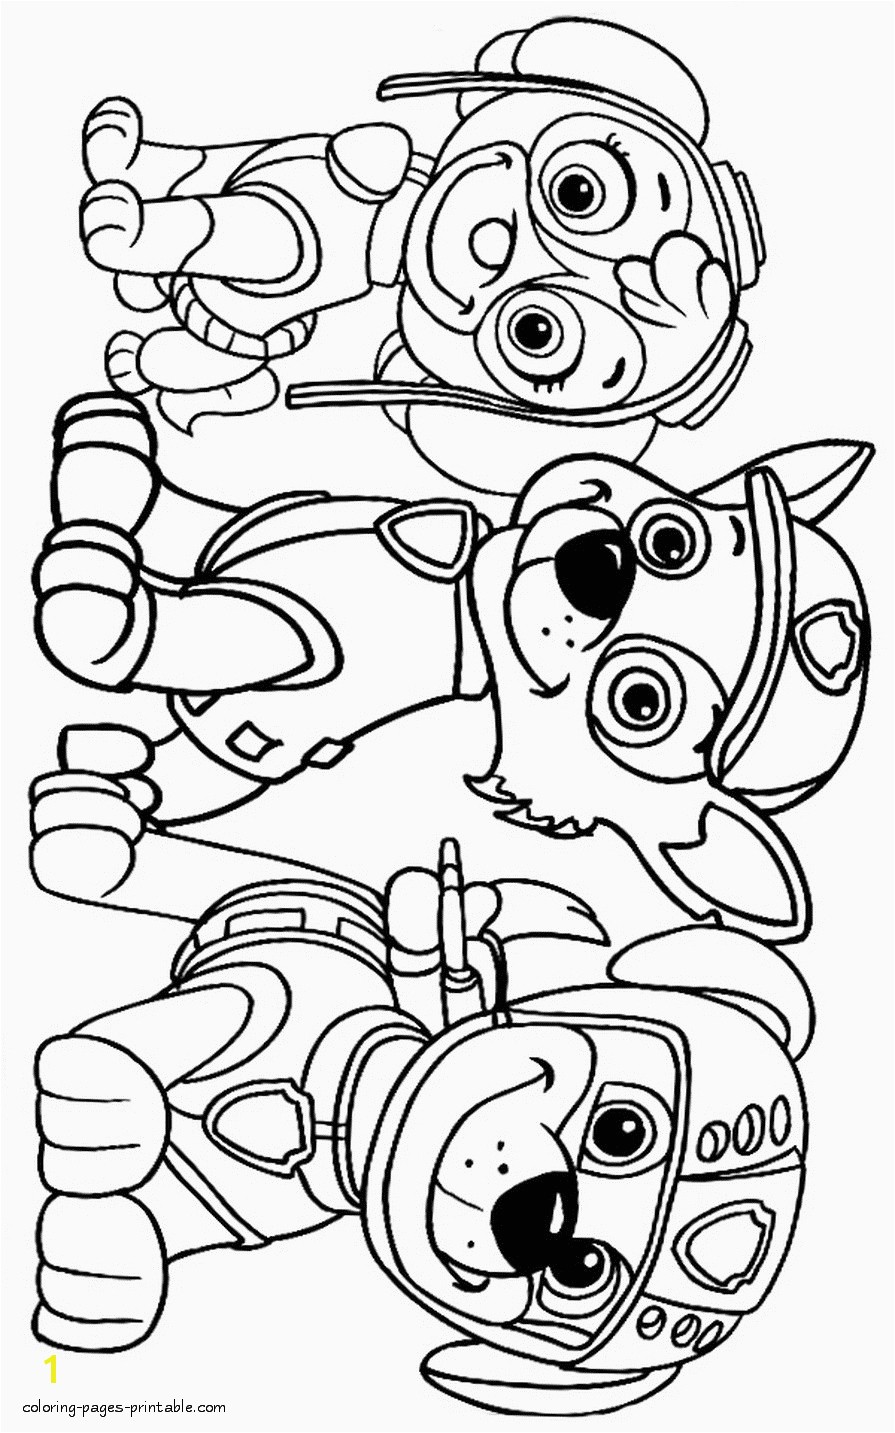 Cute Puppy Coloring Pages Lovely Cute Printable Coloring Pages New Printable Od Dog Coloring Pages